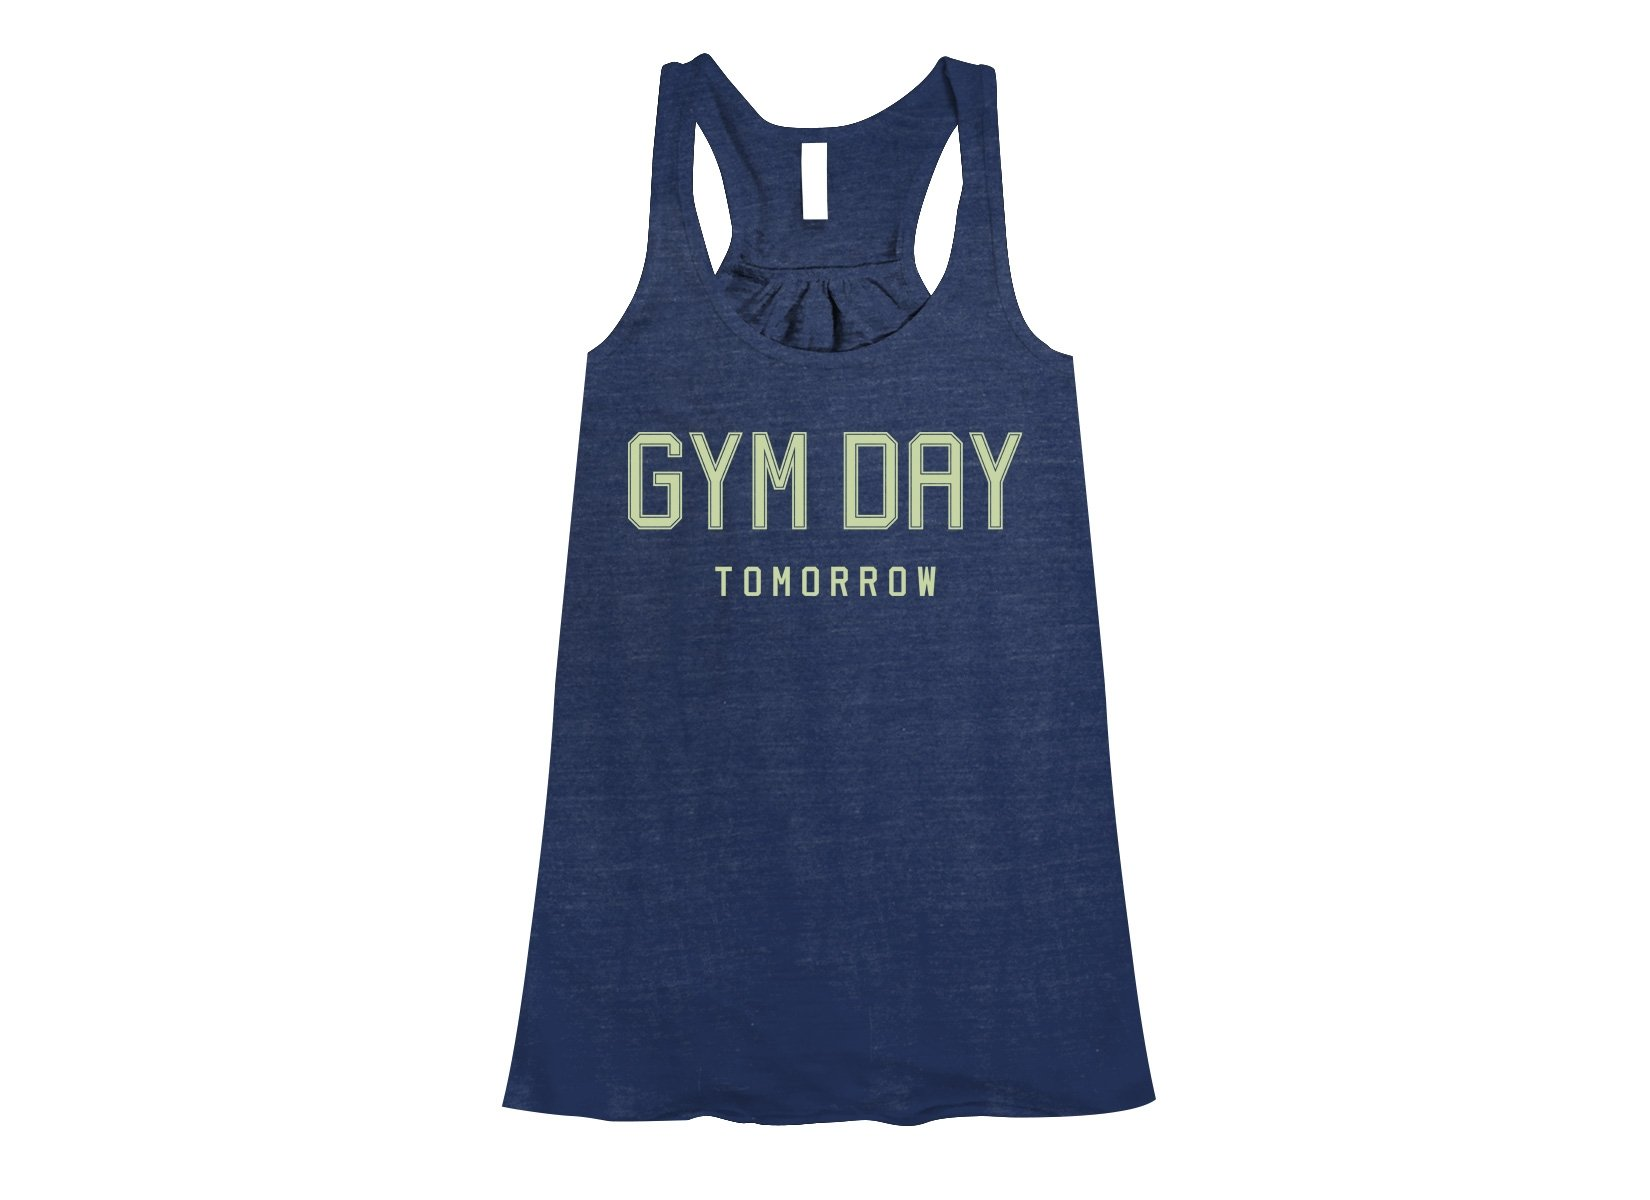 Gym Day Tomorrow on Womens Tanks T-Shirt